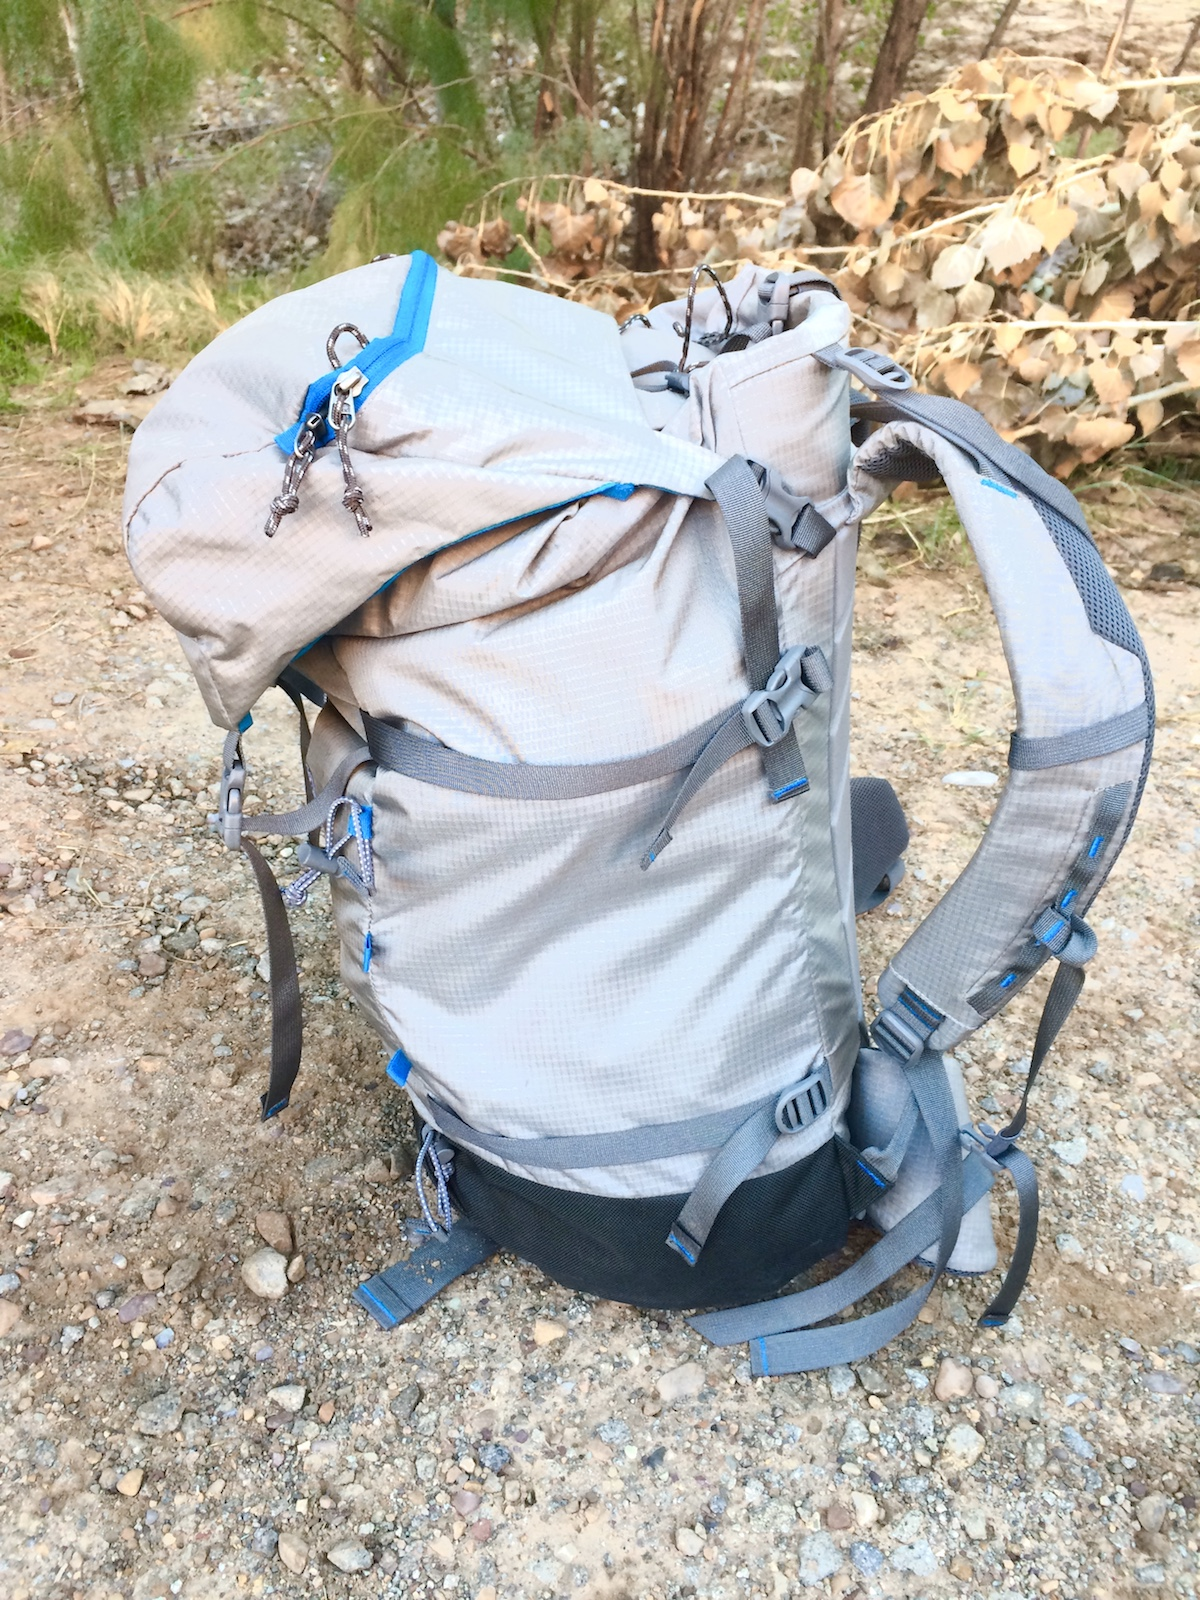 The lid of the Yeti 50L pack flops way over when the pack is not full. [Photo] Mike Lewis